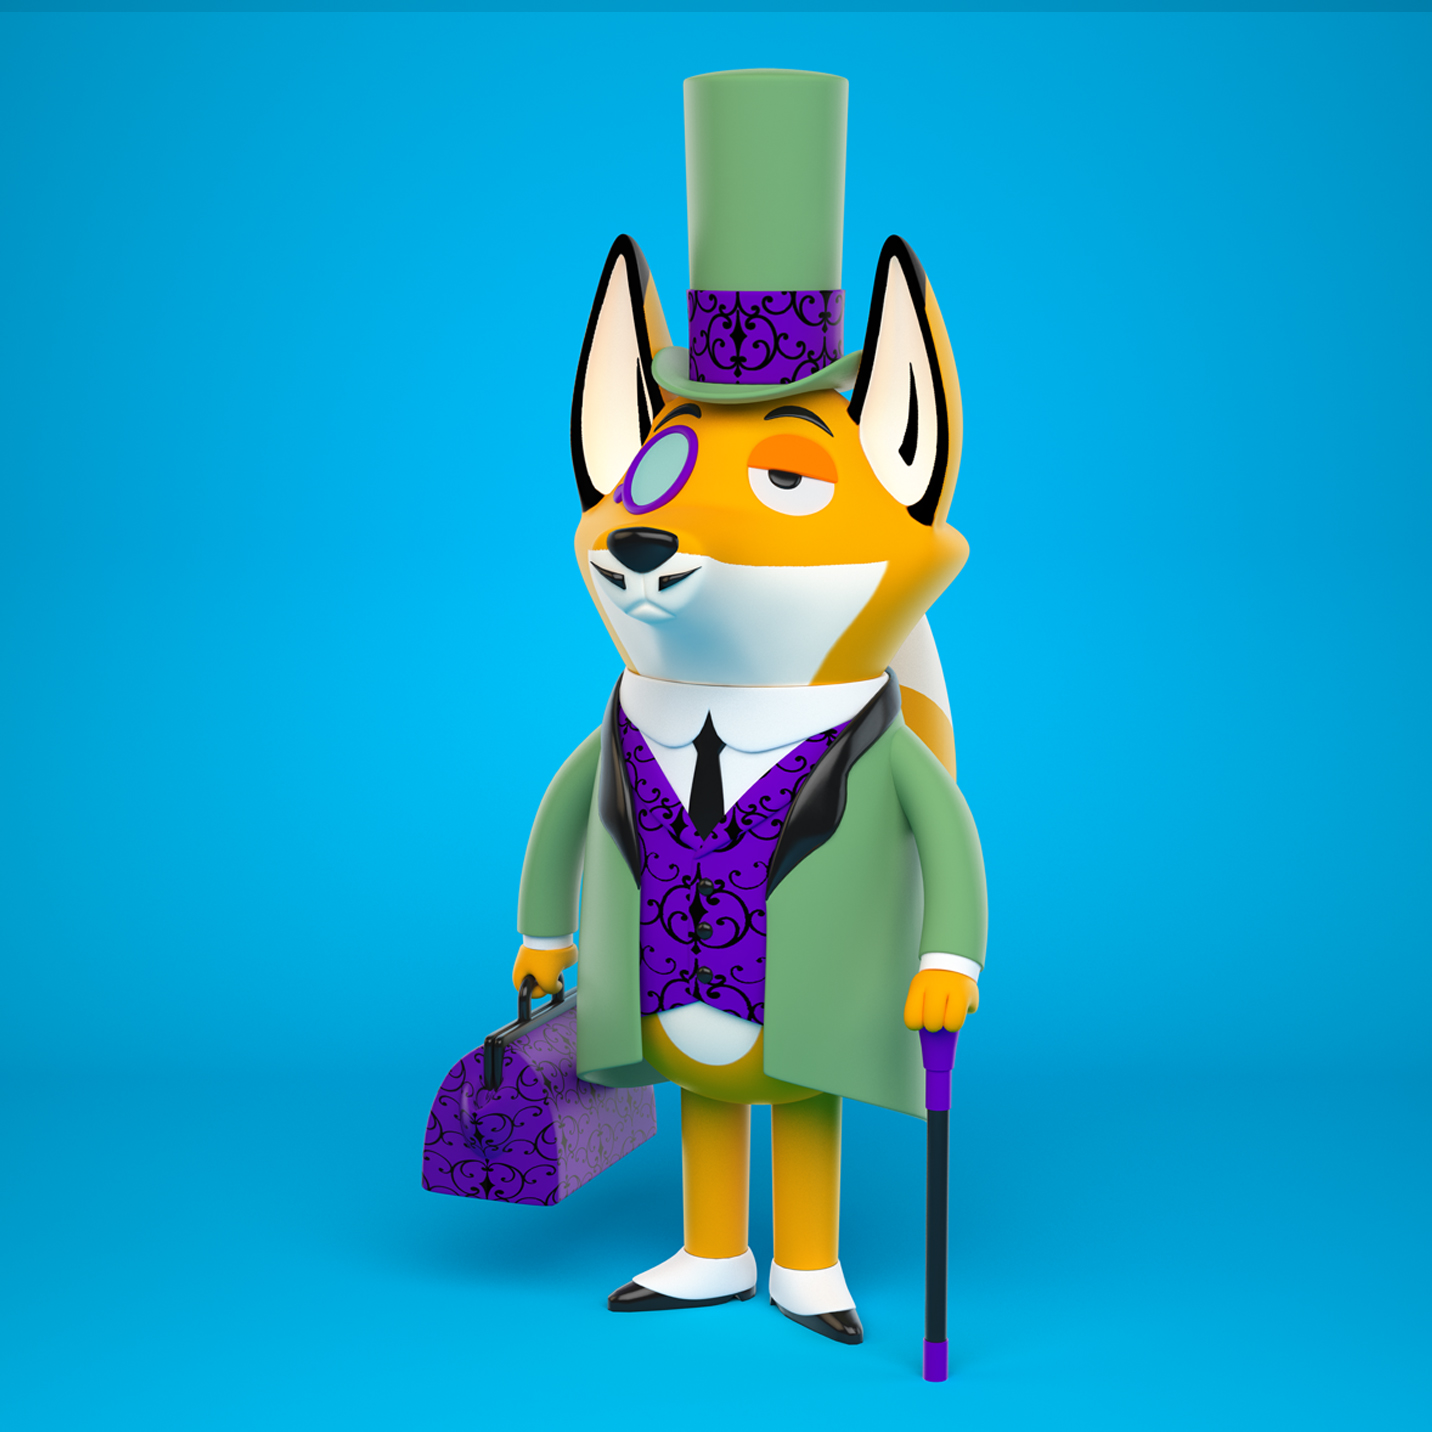 Jeff-Pidgeon-Trickster-Fox-4_o.jpg